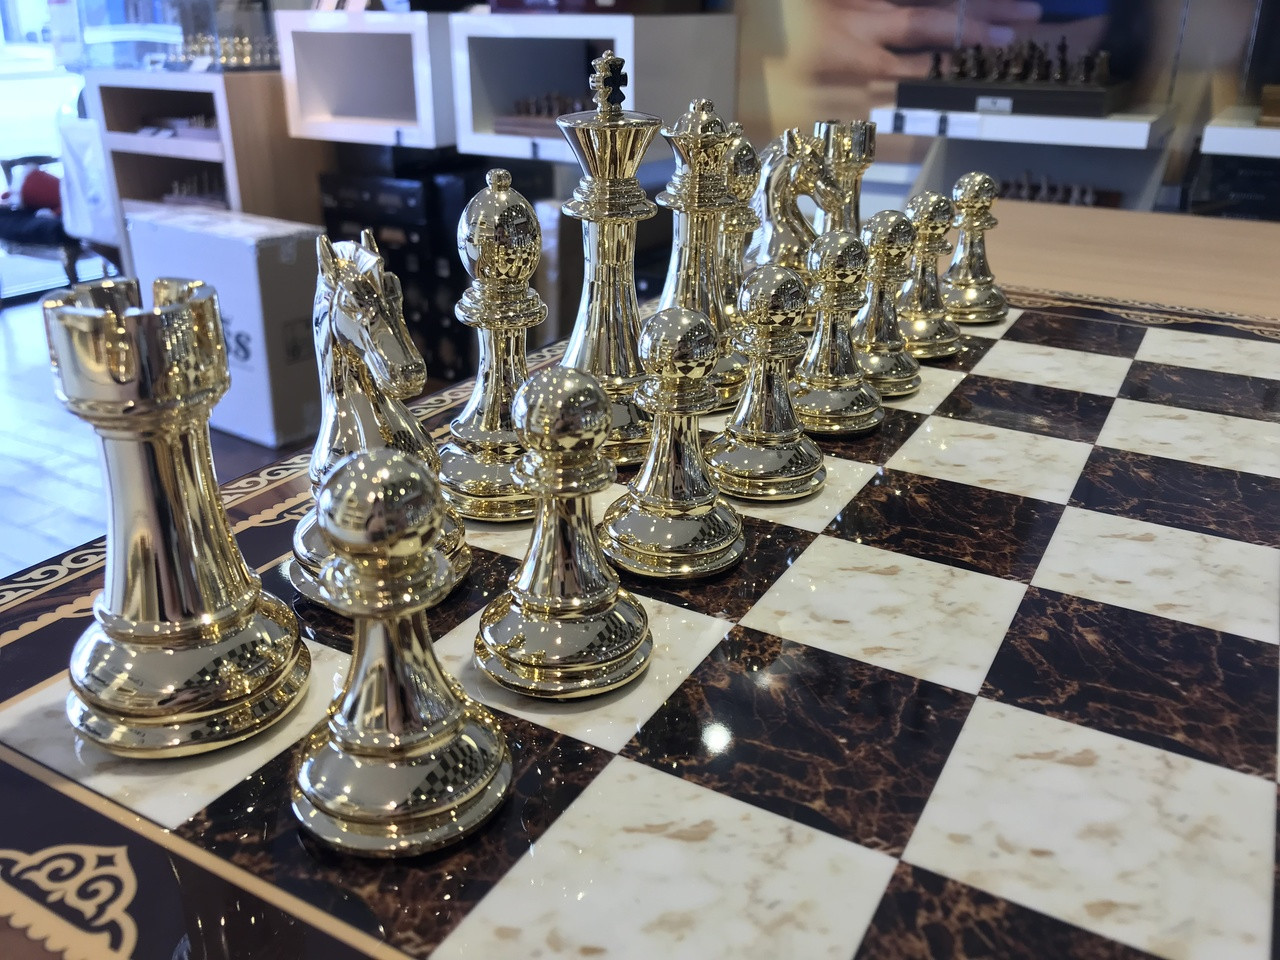 Gold Chess Pieces Dal Rossi 50cm Mosaic Finish Chess Board 105mm Gold Silver Colour Chess Pieces